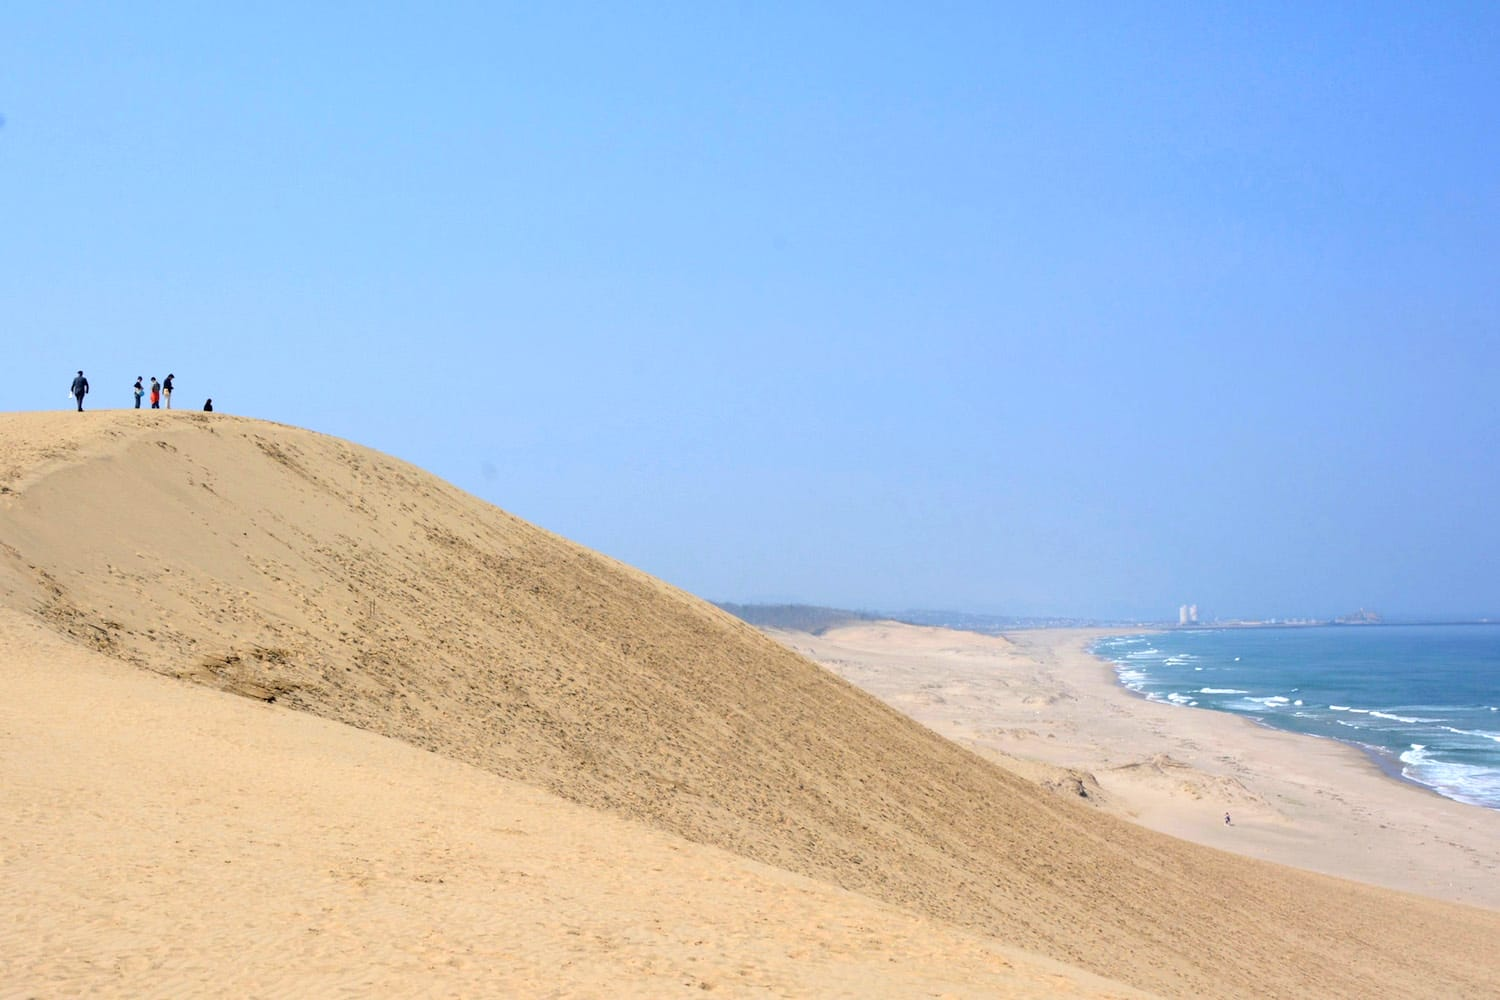 Tottori Sand Dunes in Japan